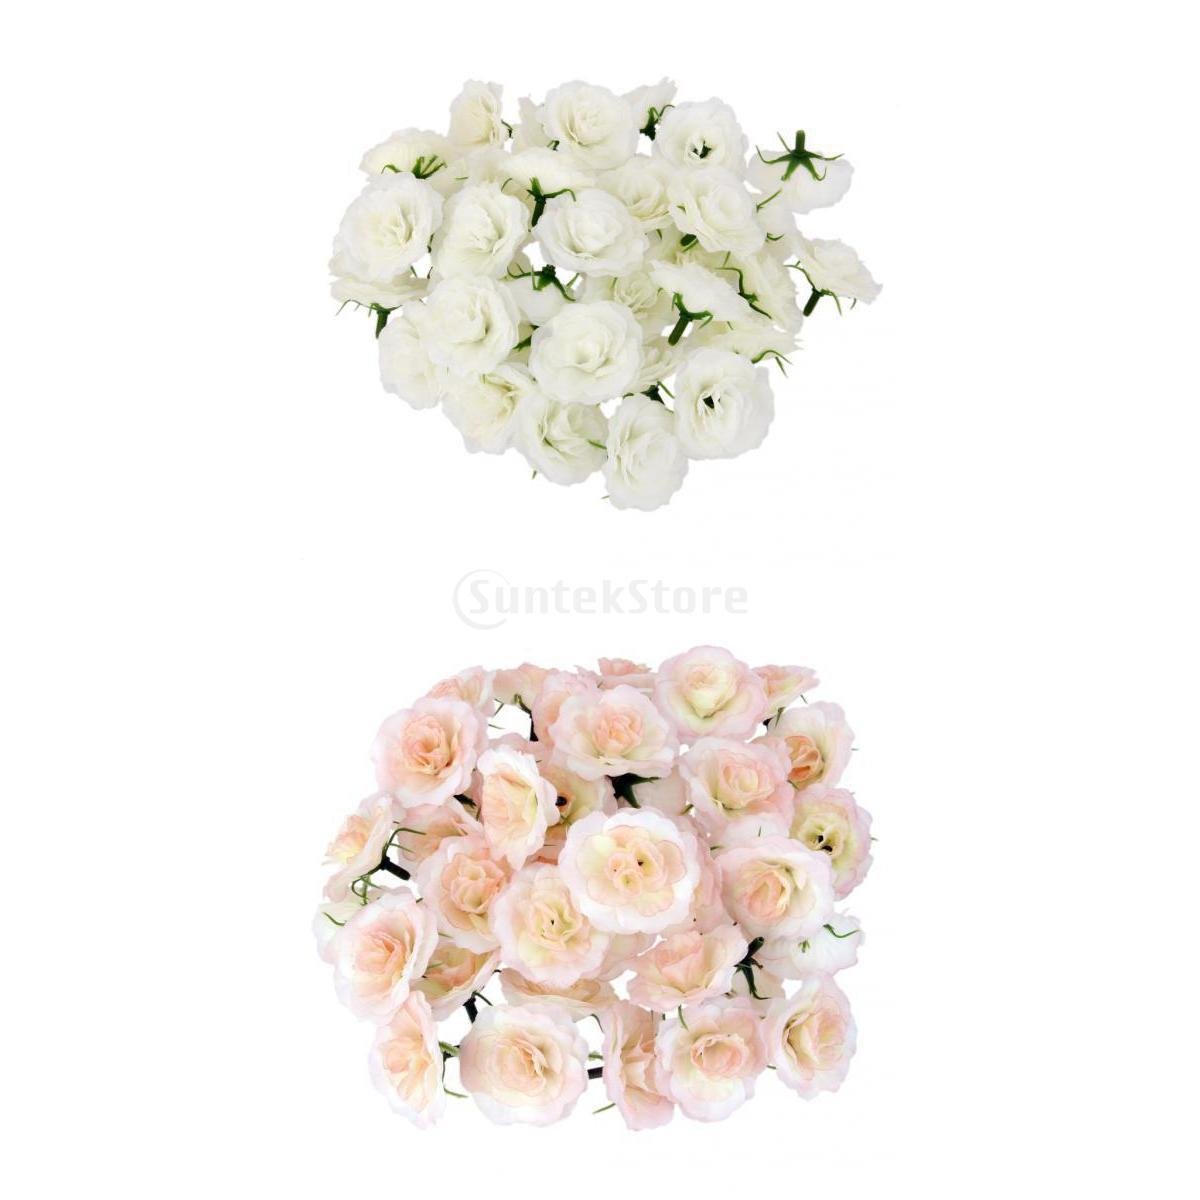 Silk flowers bulk wholesale interesting silk flower royalty free cheap pcs artificial silk fake rose flower heads bulk wedding party home decoration diy craft pink with silk flowers bulk wholesale izmirmasajfo